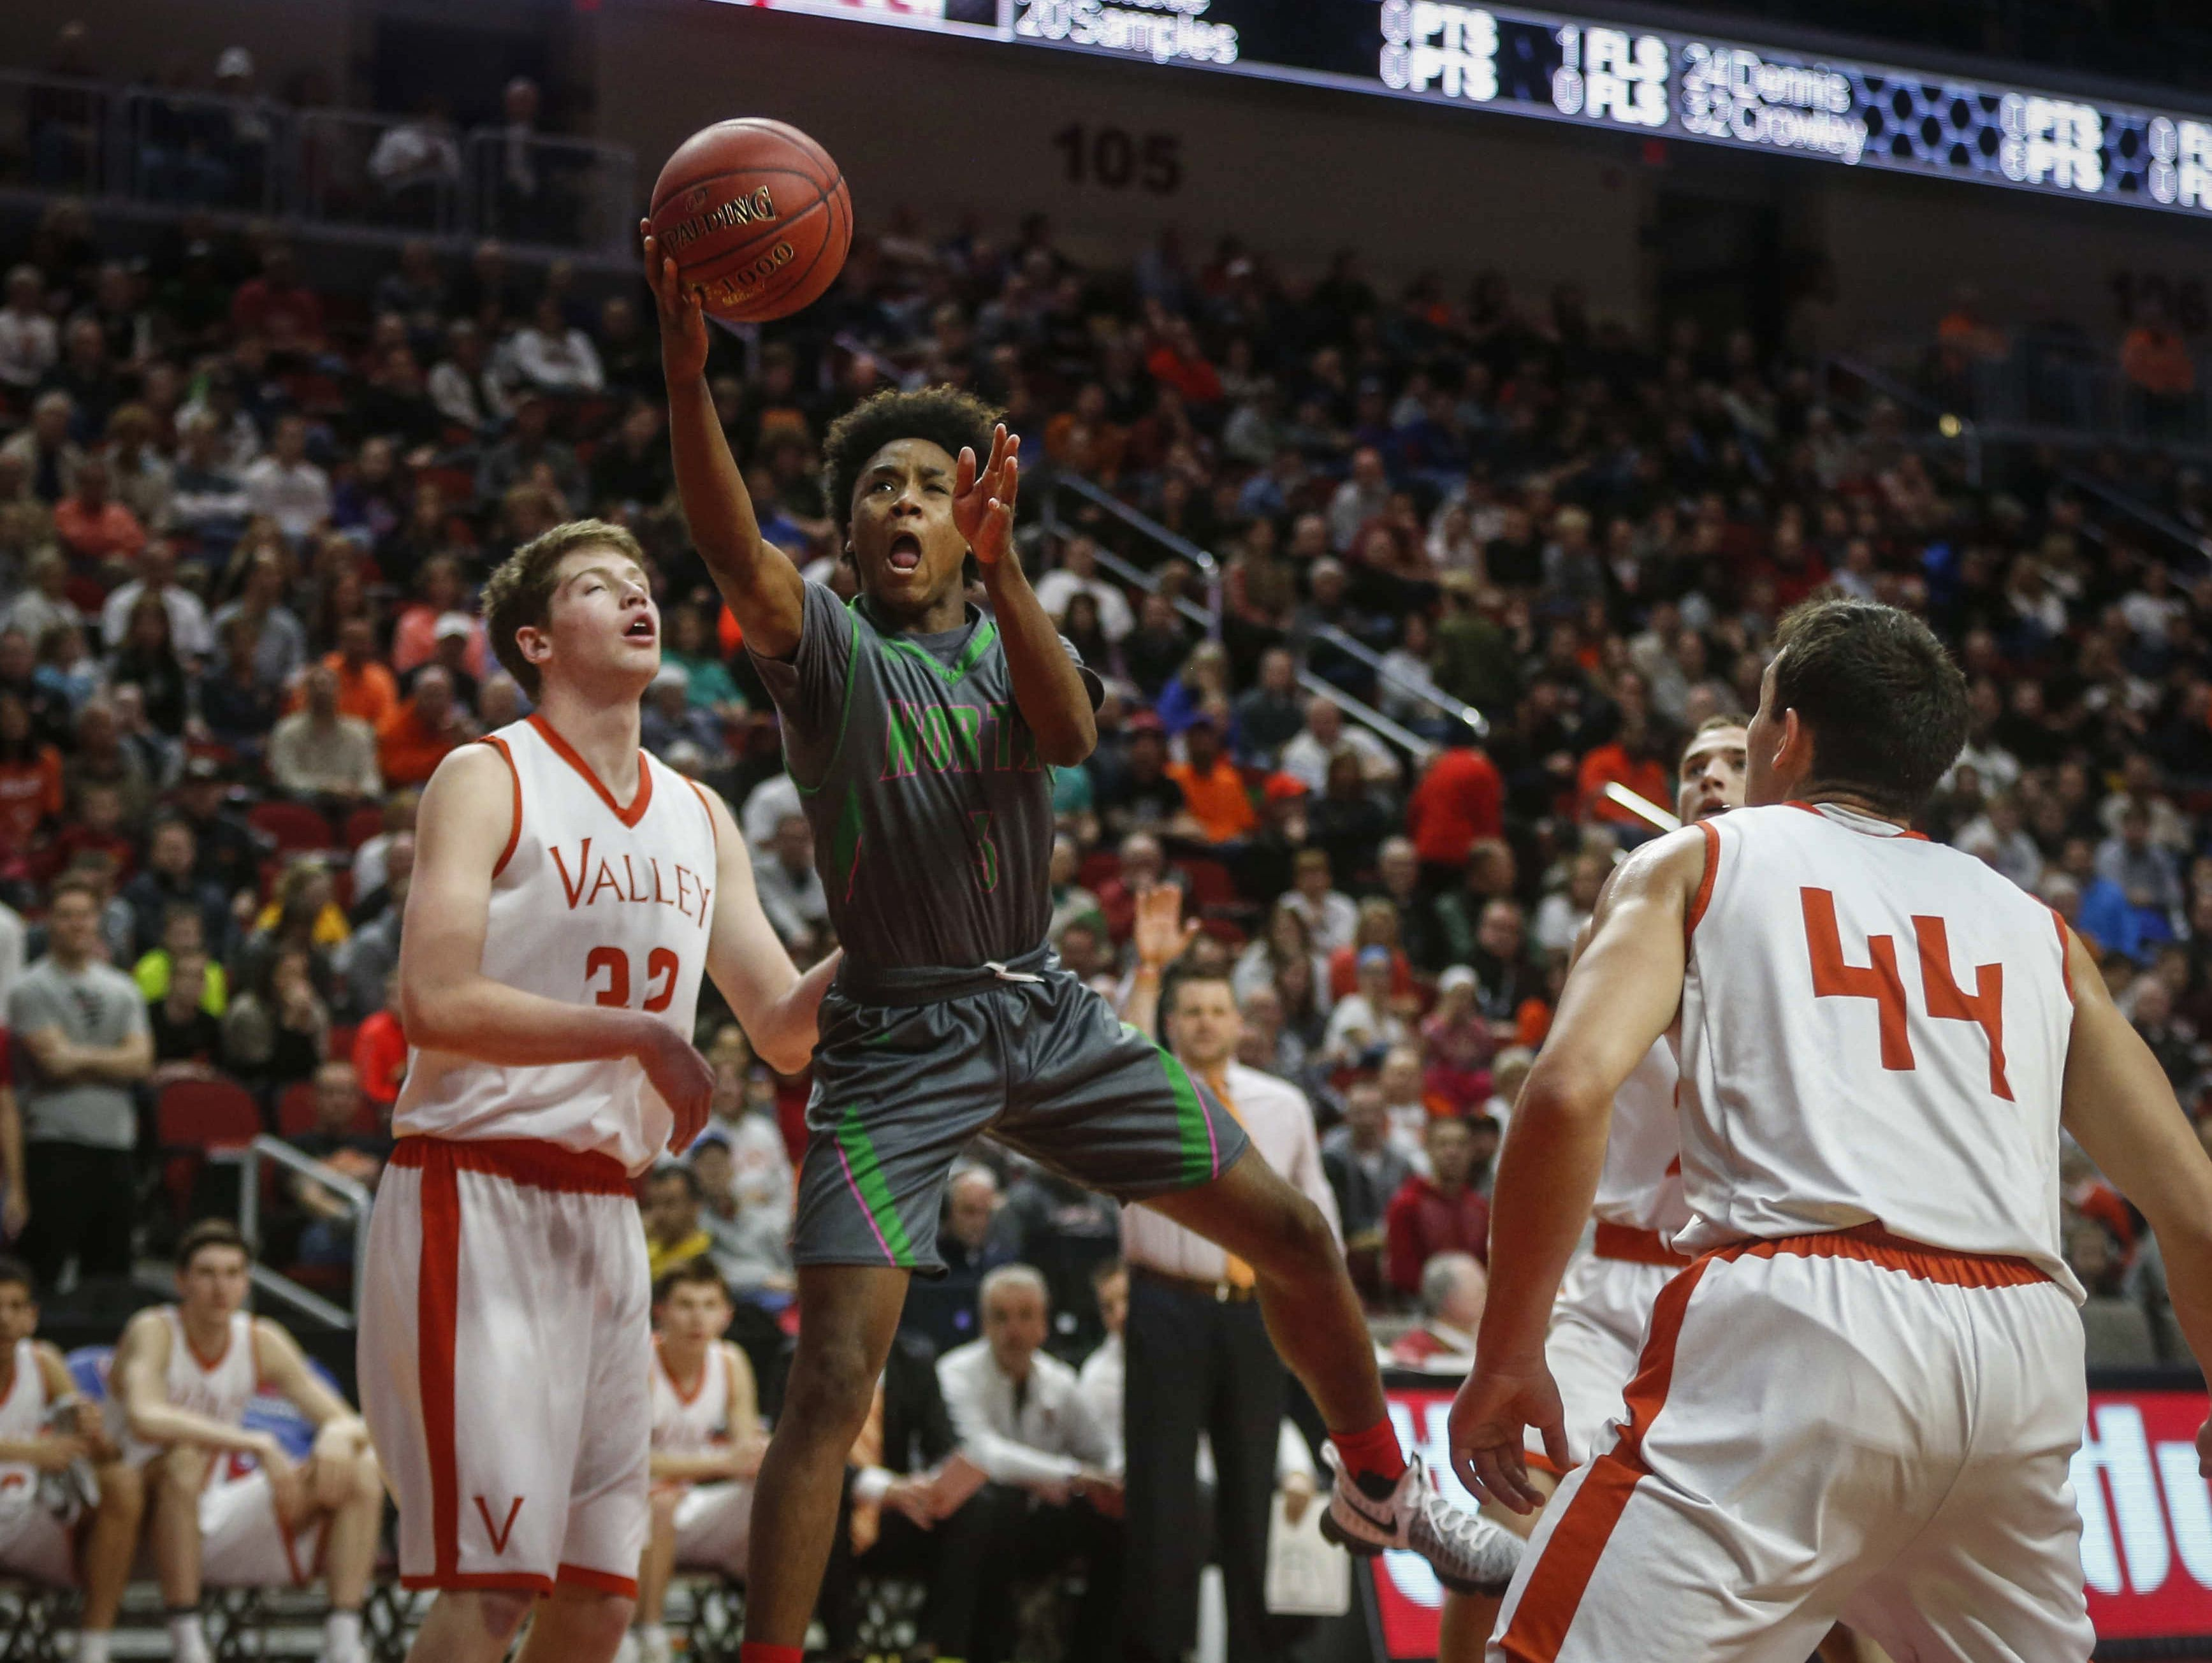 Des Moines North sophomore Tyreke Locure runs the ball up to the hoop against Valley during the Iowa High School state basketball tournament at Wells Fargo Arena in Des Moines on Wednesday, March 8, 2017.